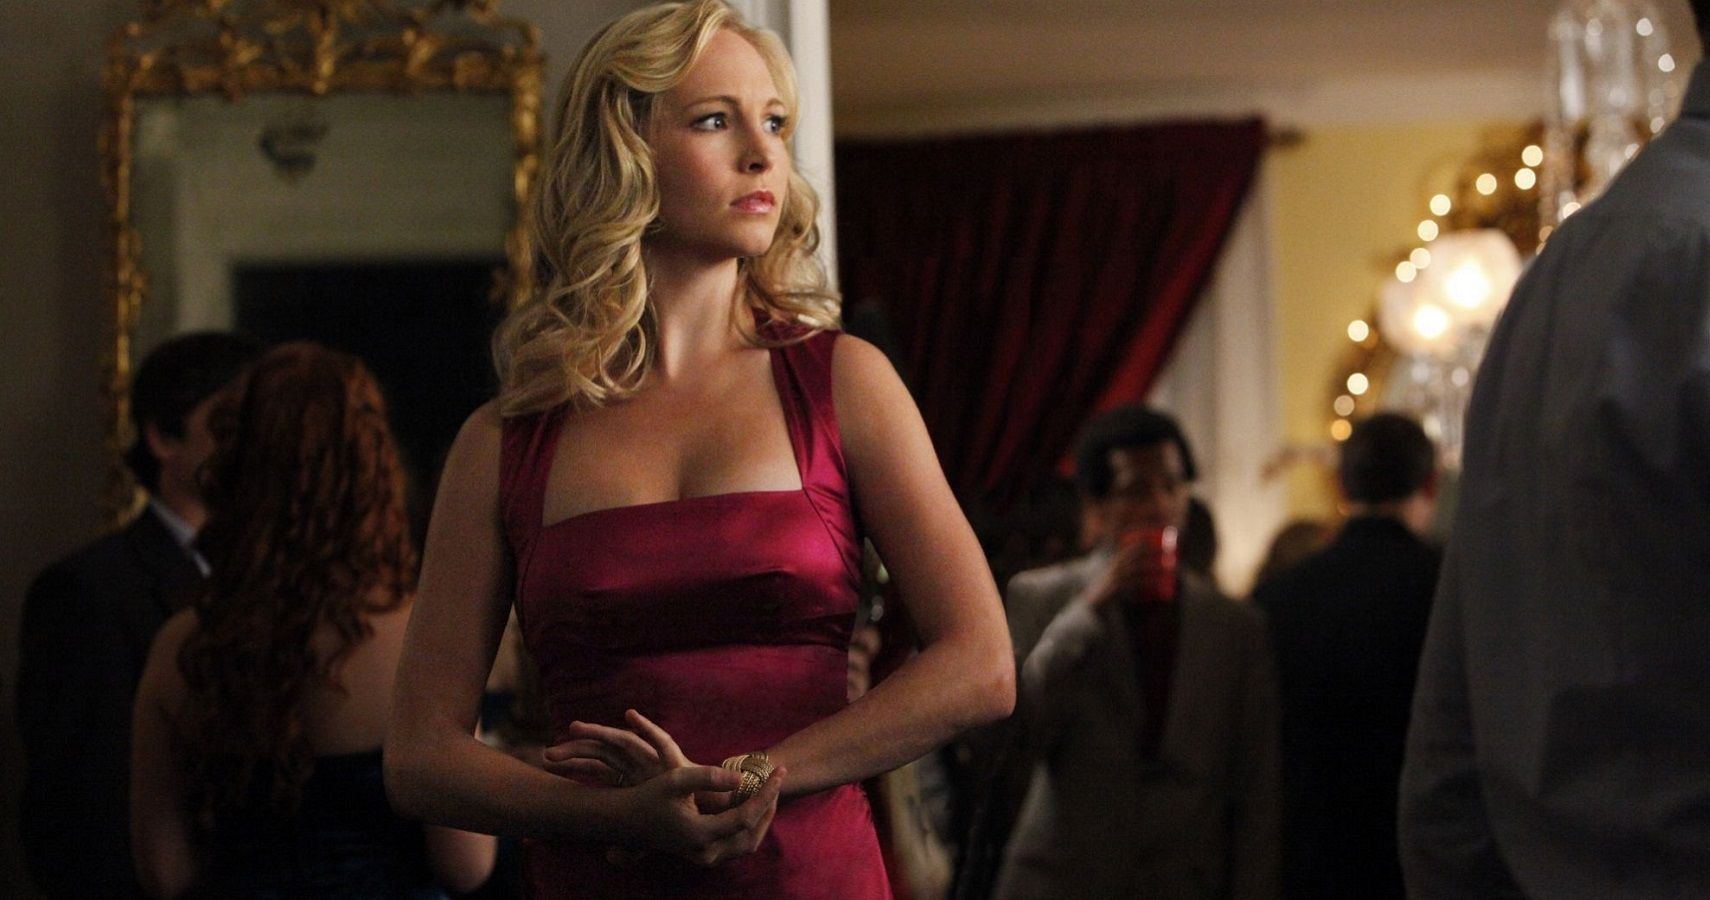 The Vampire Diaries The 10 Worst Things Caroline Ever Did Ranked